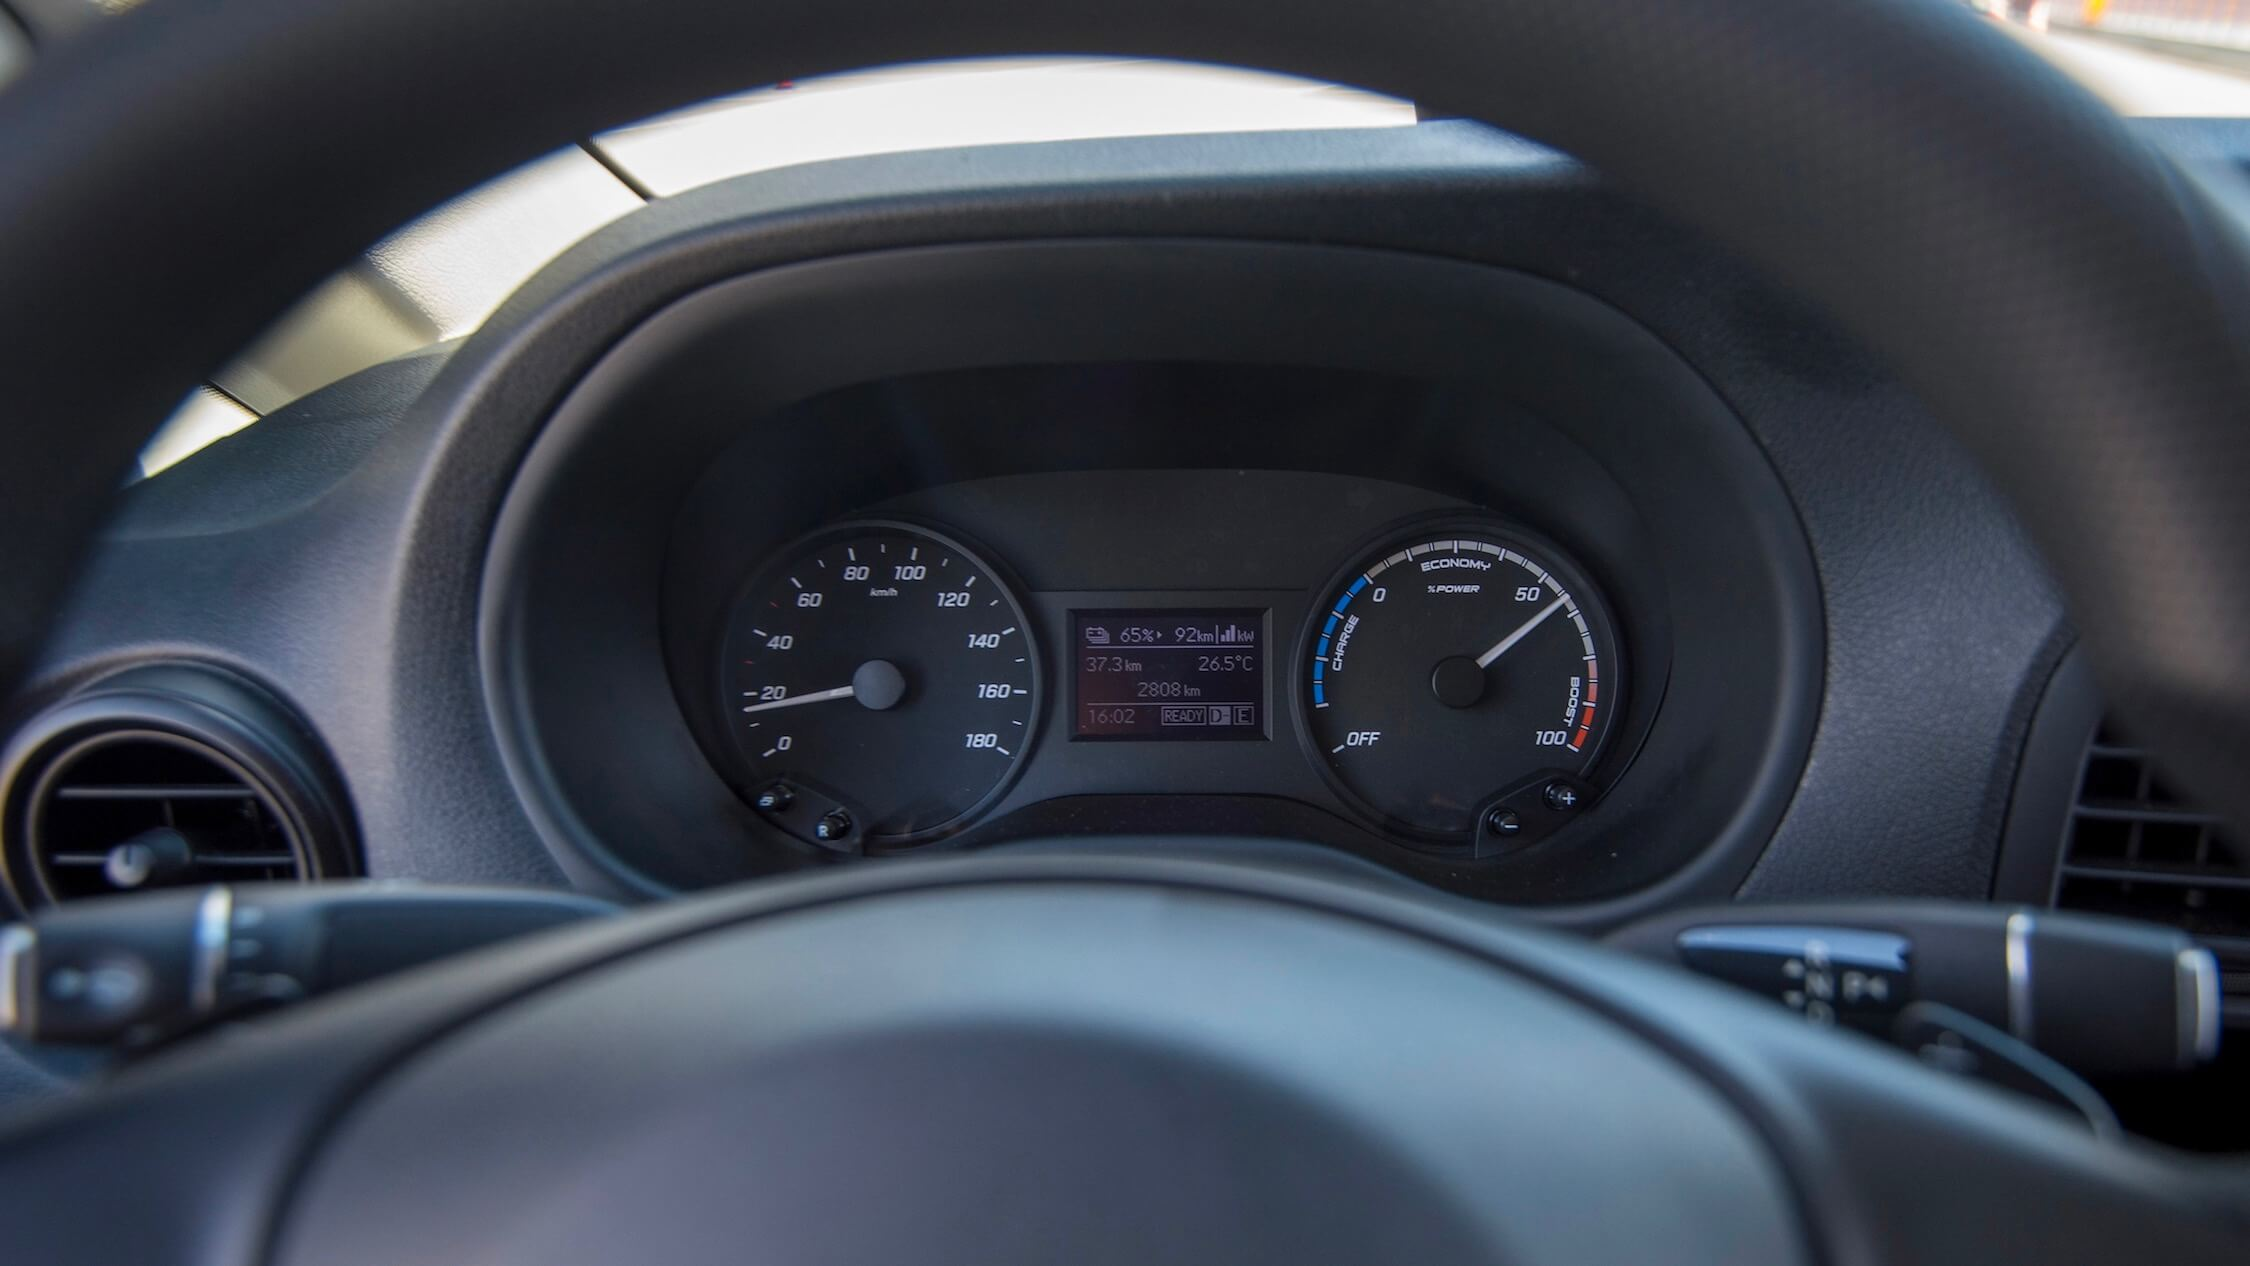 Mercedes eVito dashboard